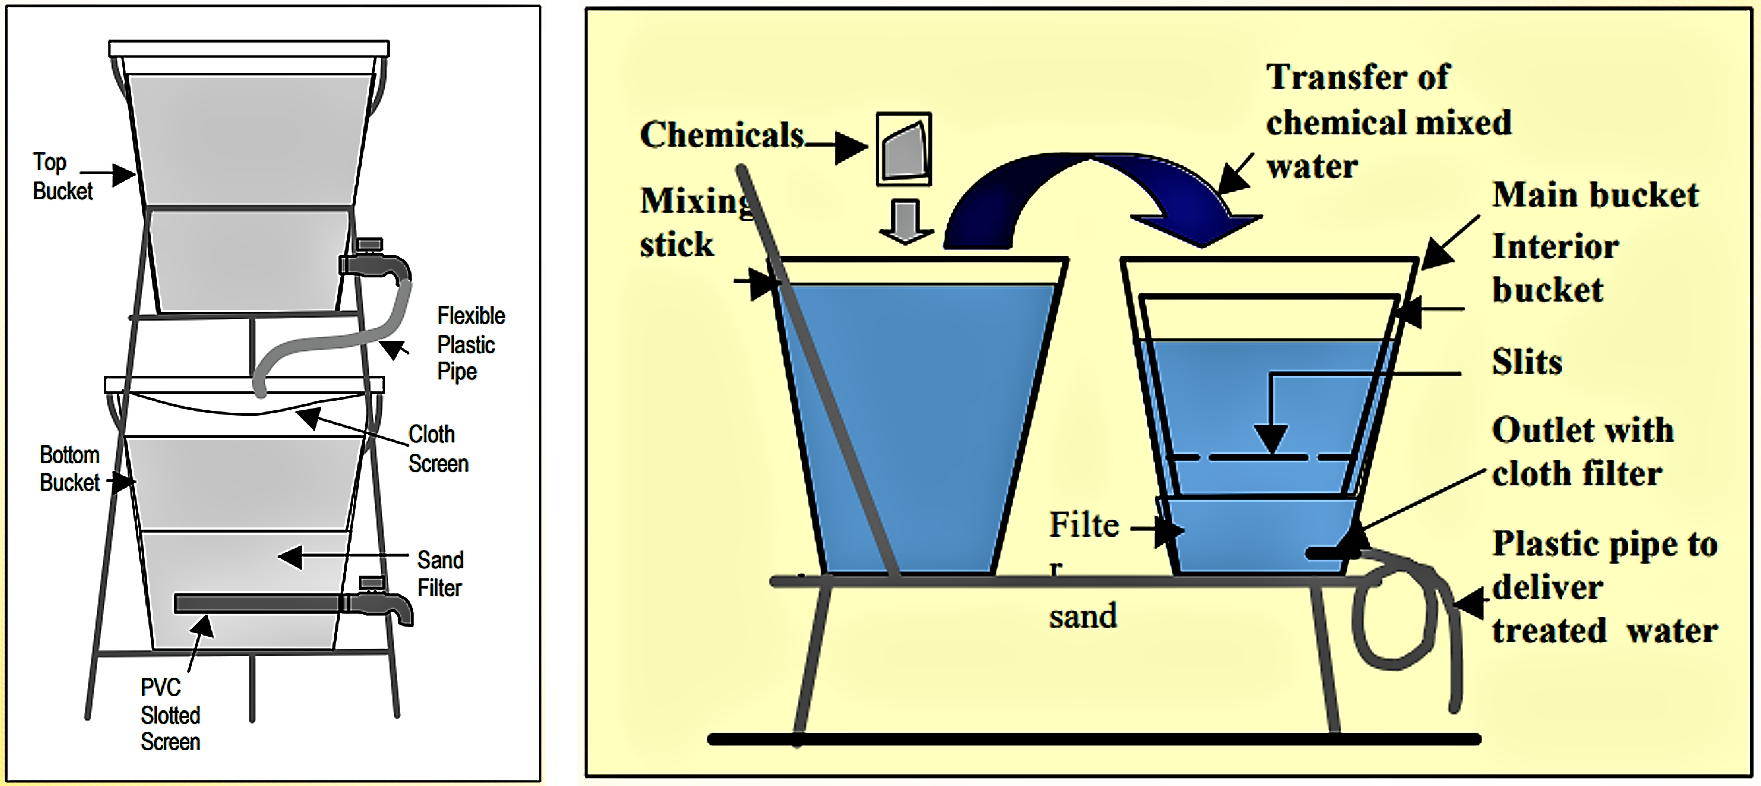 Bucket Treatment Unit (left) and Stevens Institute Technology (right), two household-level filters for arsenic removal from drinking water. Source: AHMED (n.y.)